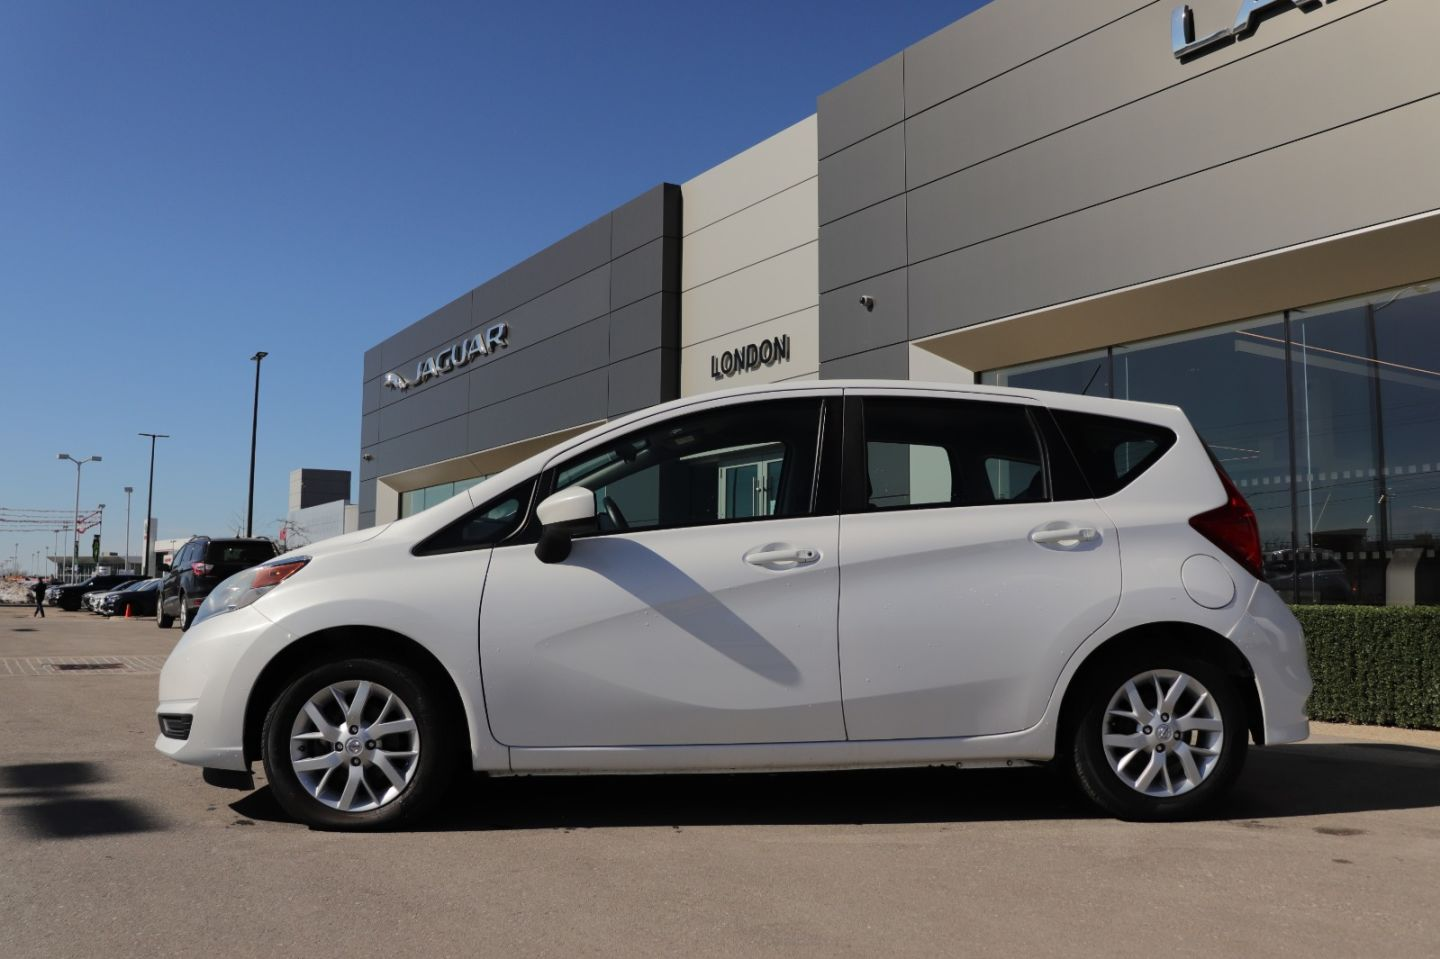 2017 Nissan Versa Note SV for sale in London, Ontario